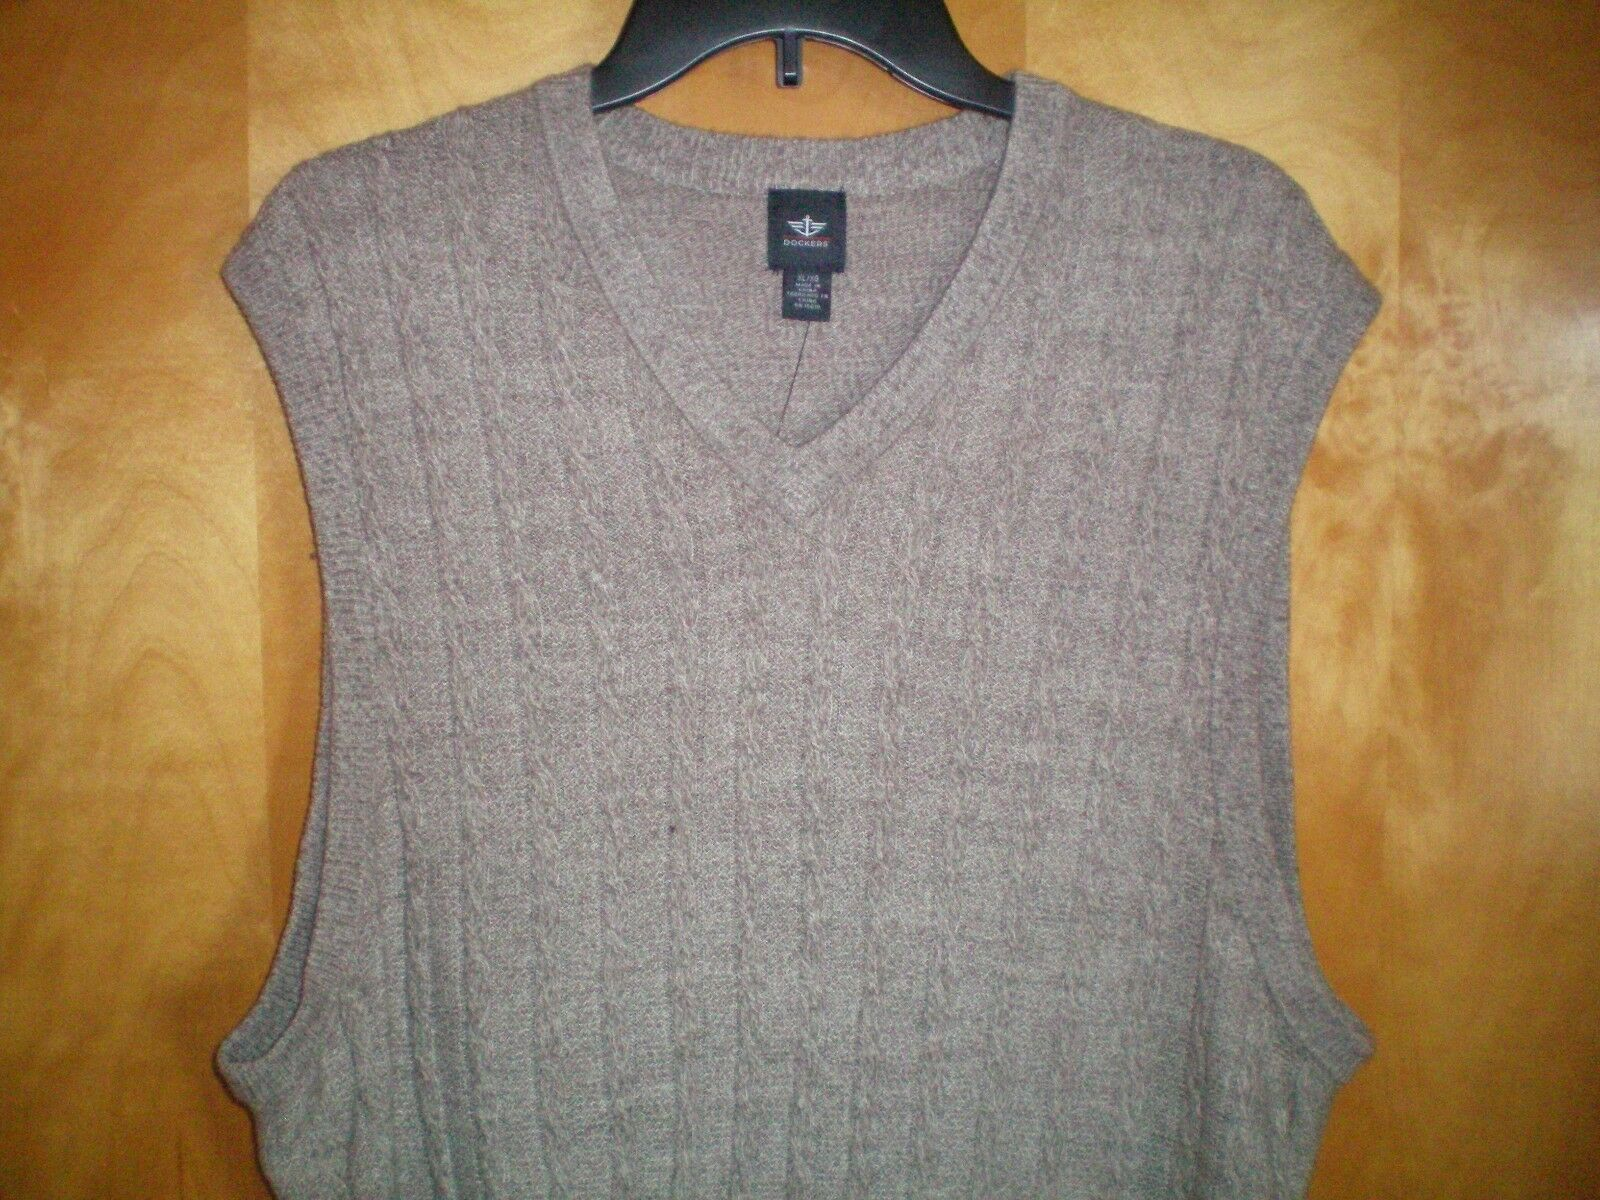 DOCKERS Mens Tan Acrylic Cable Knit Front Vneck Sweater Vest XL | eBay